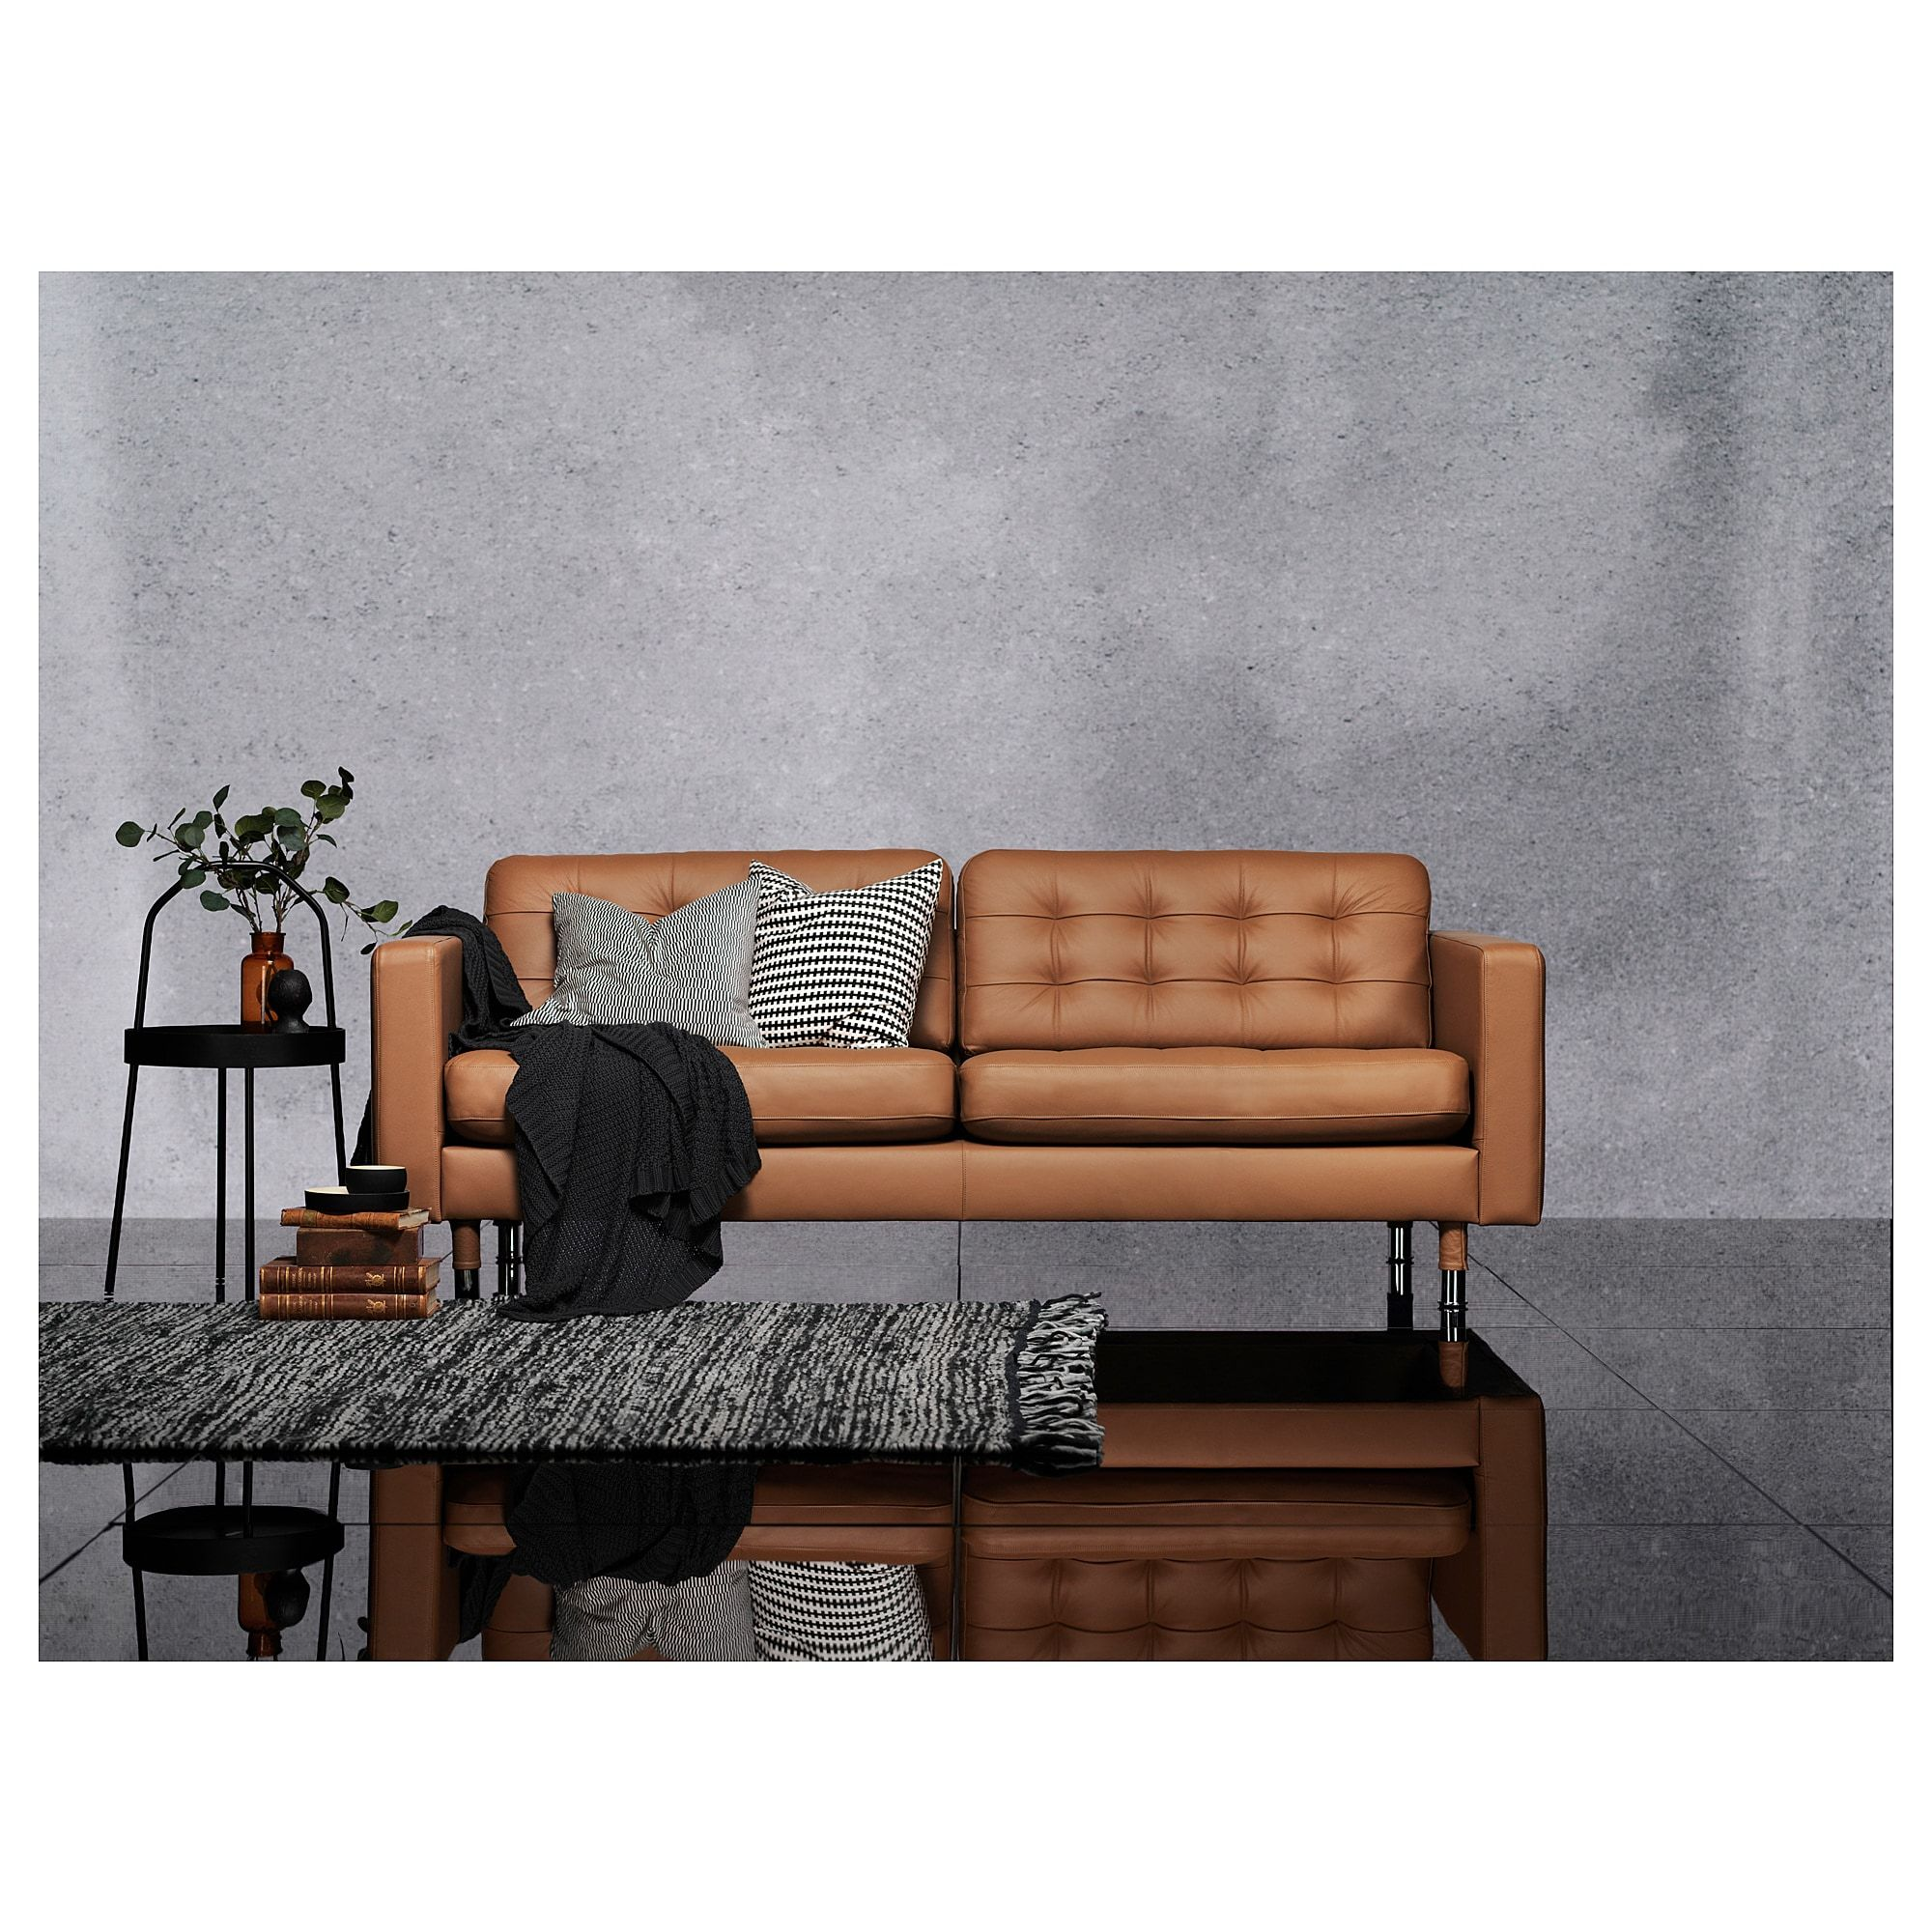 Ikea Landskrona Sofa Grann Bomstad Golden Brown Metal In